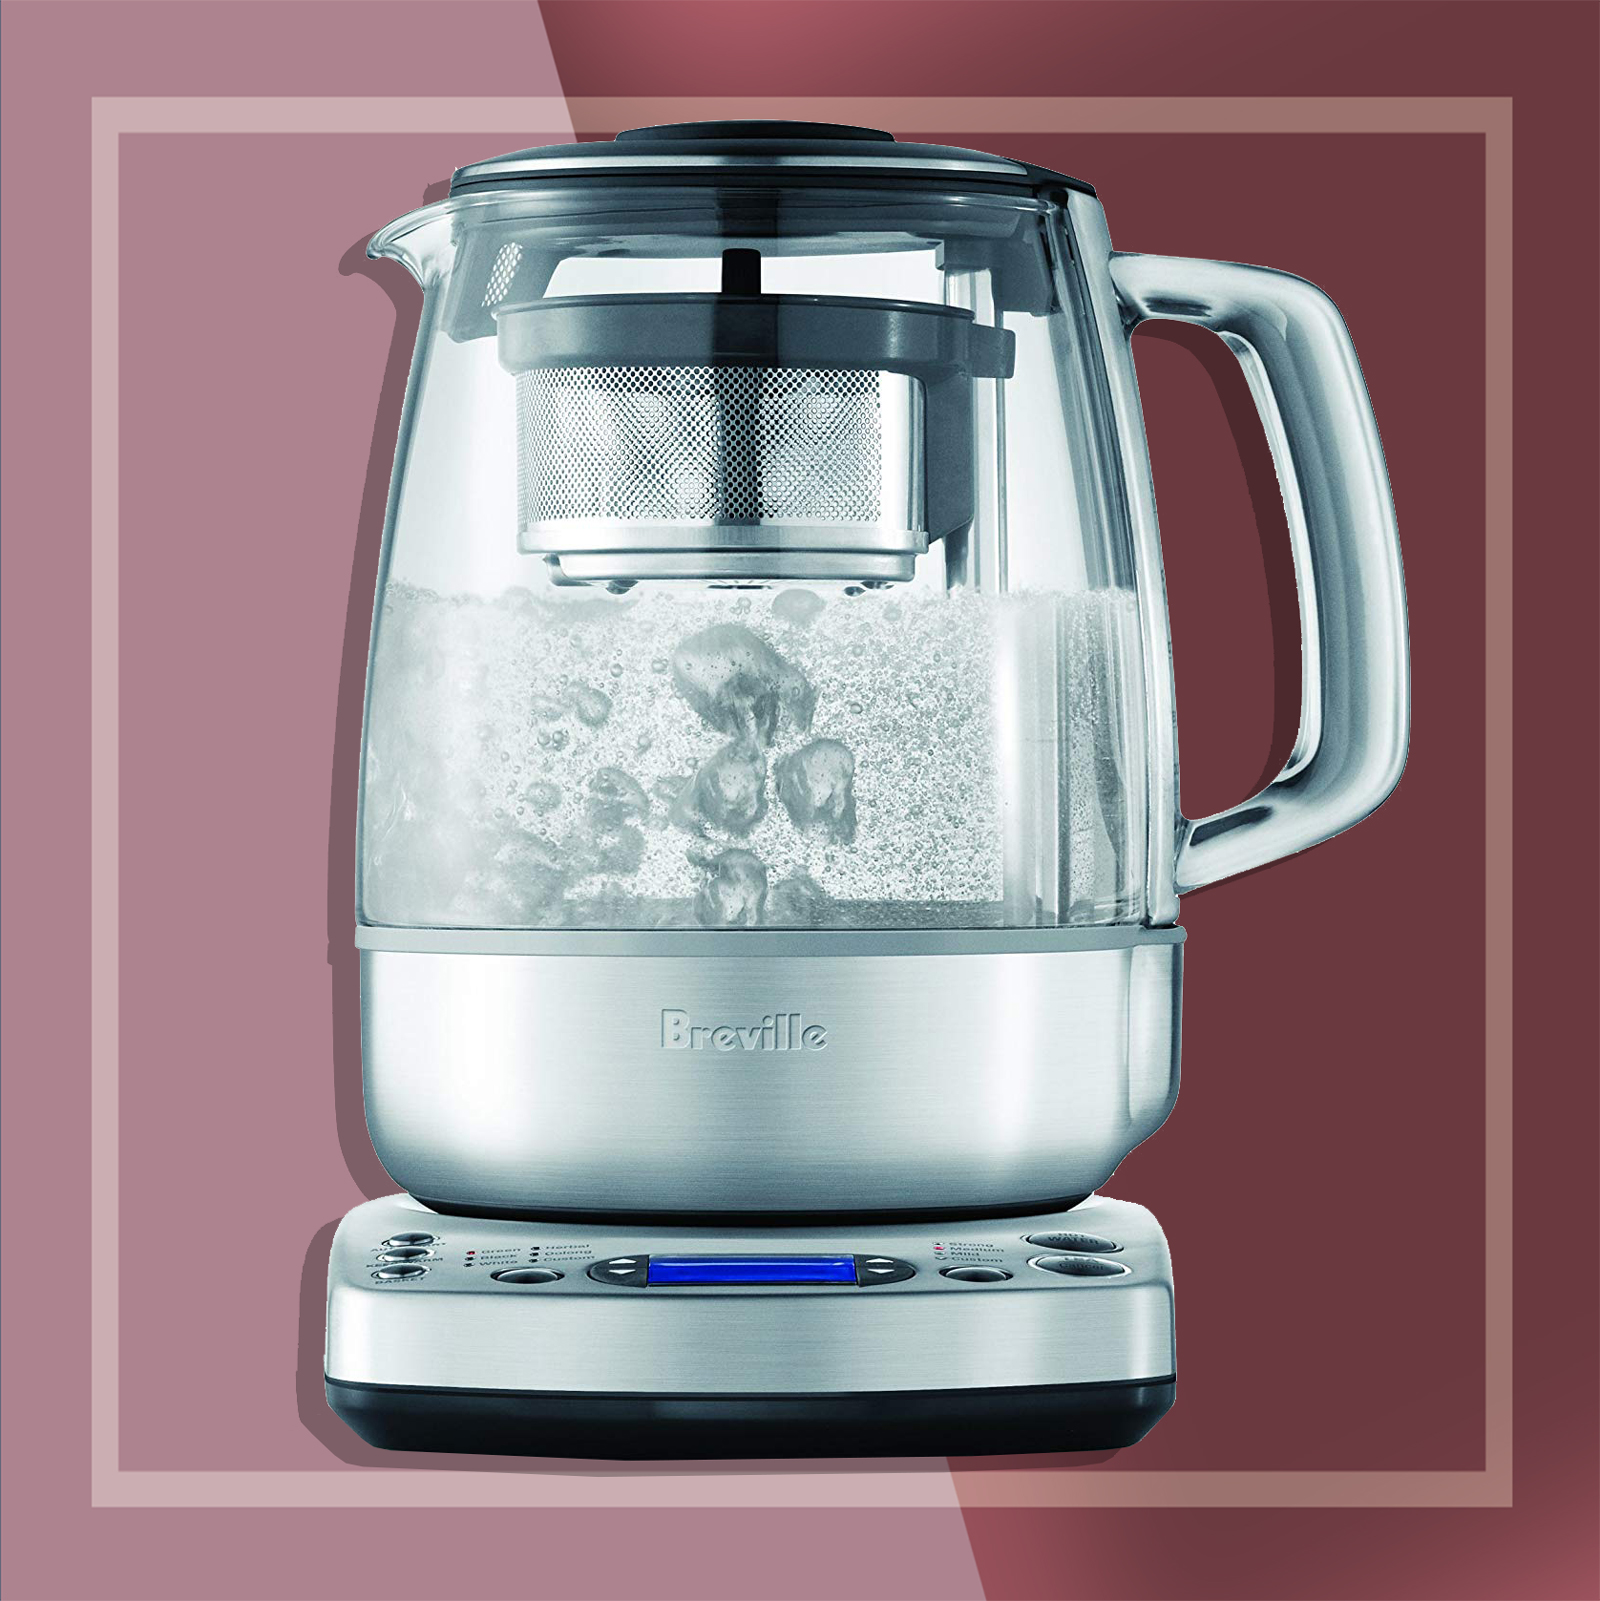 Breville One Touch Electric Kettle